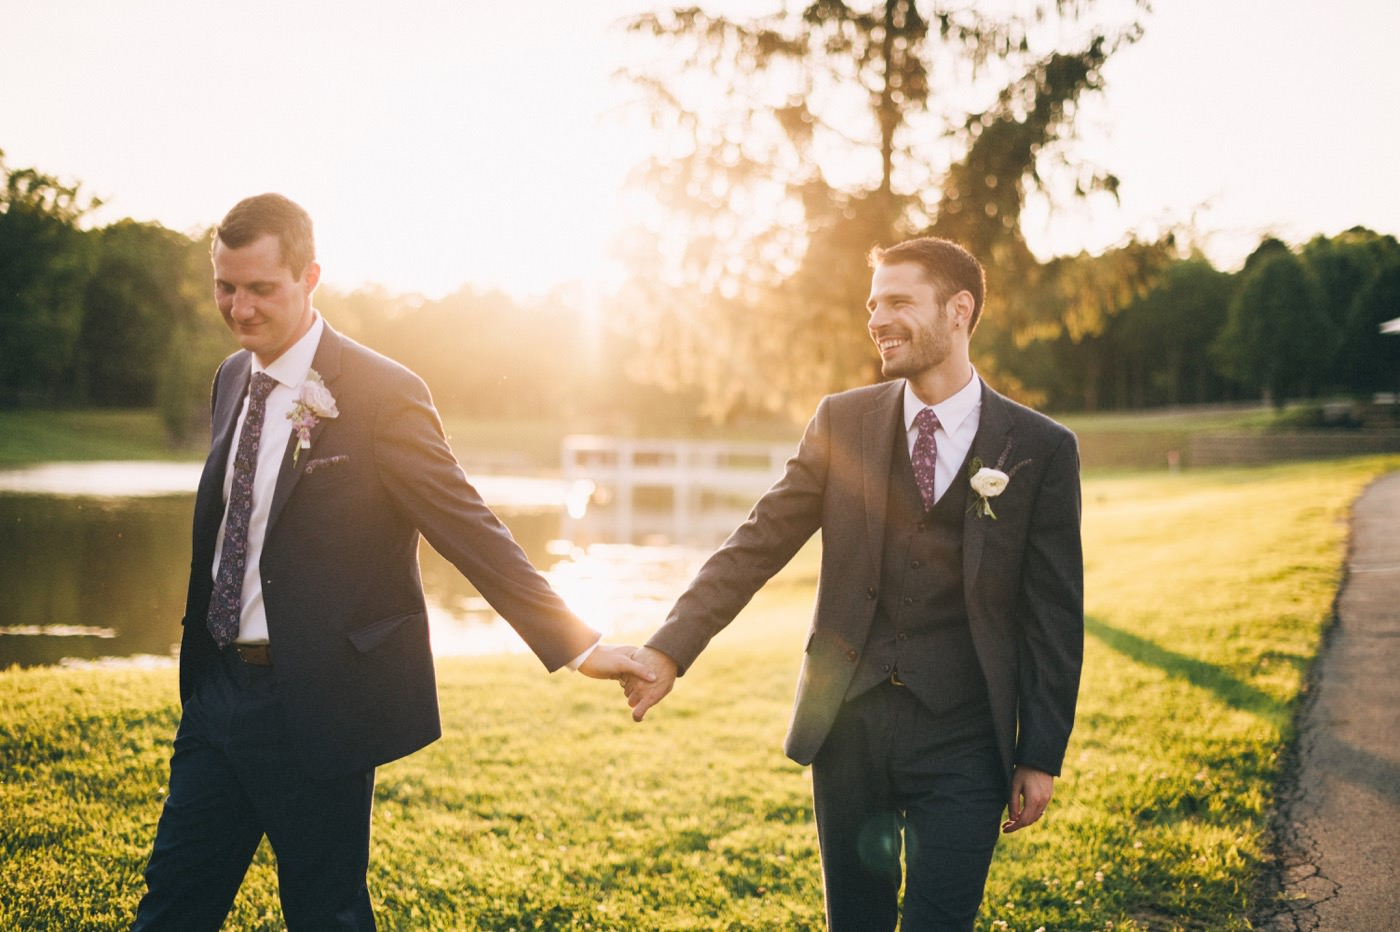 Will-Nate-Louisville-LGBTQ-Pride-Month-Kentucky-Wedding-By-Sarah-Katherine-Davis-Photograpy0061.JPG